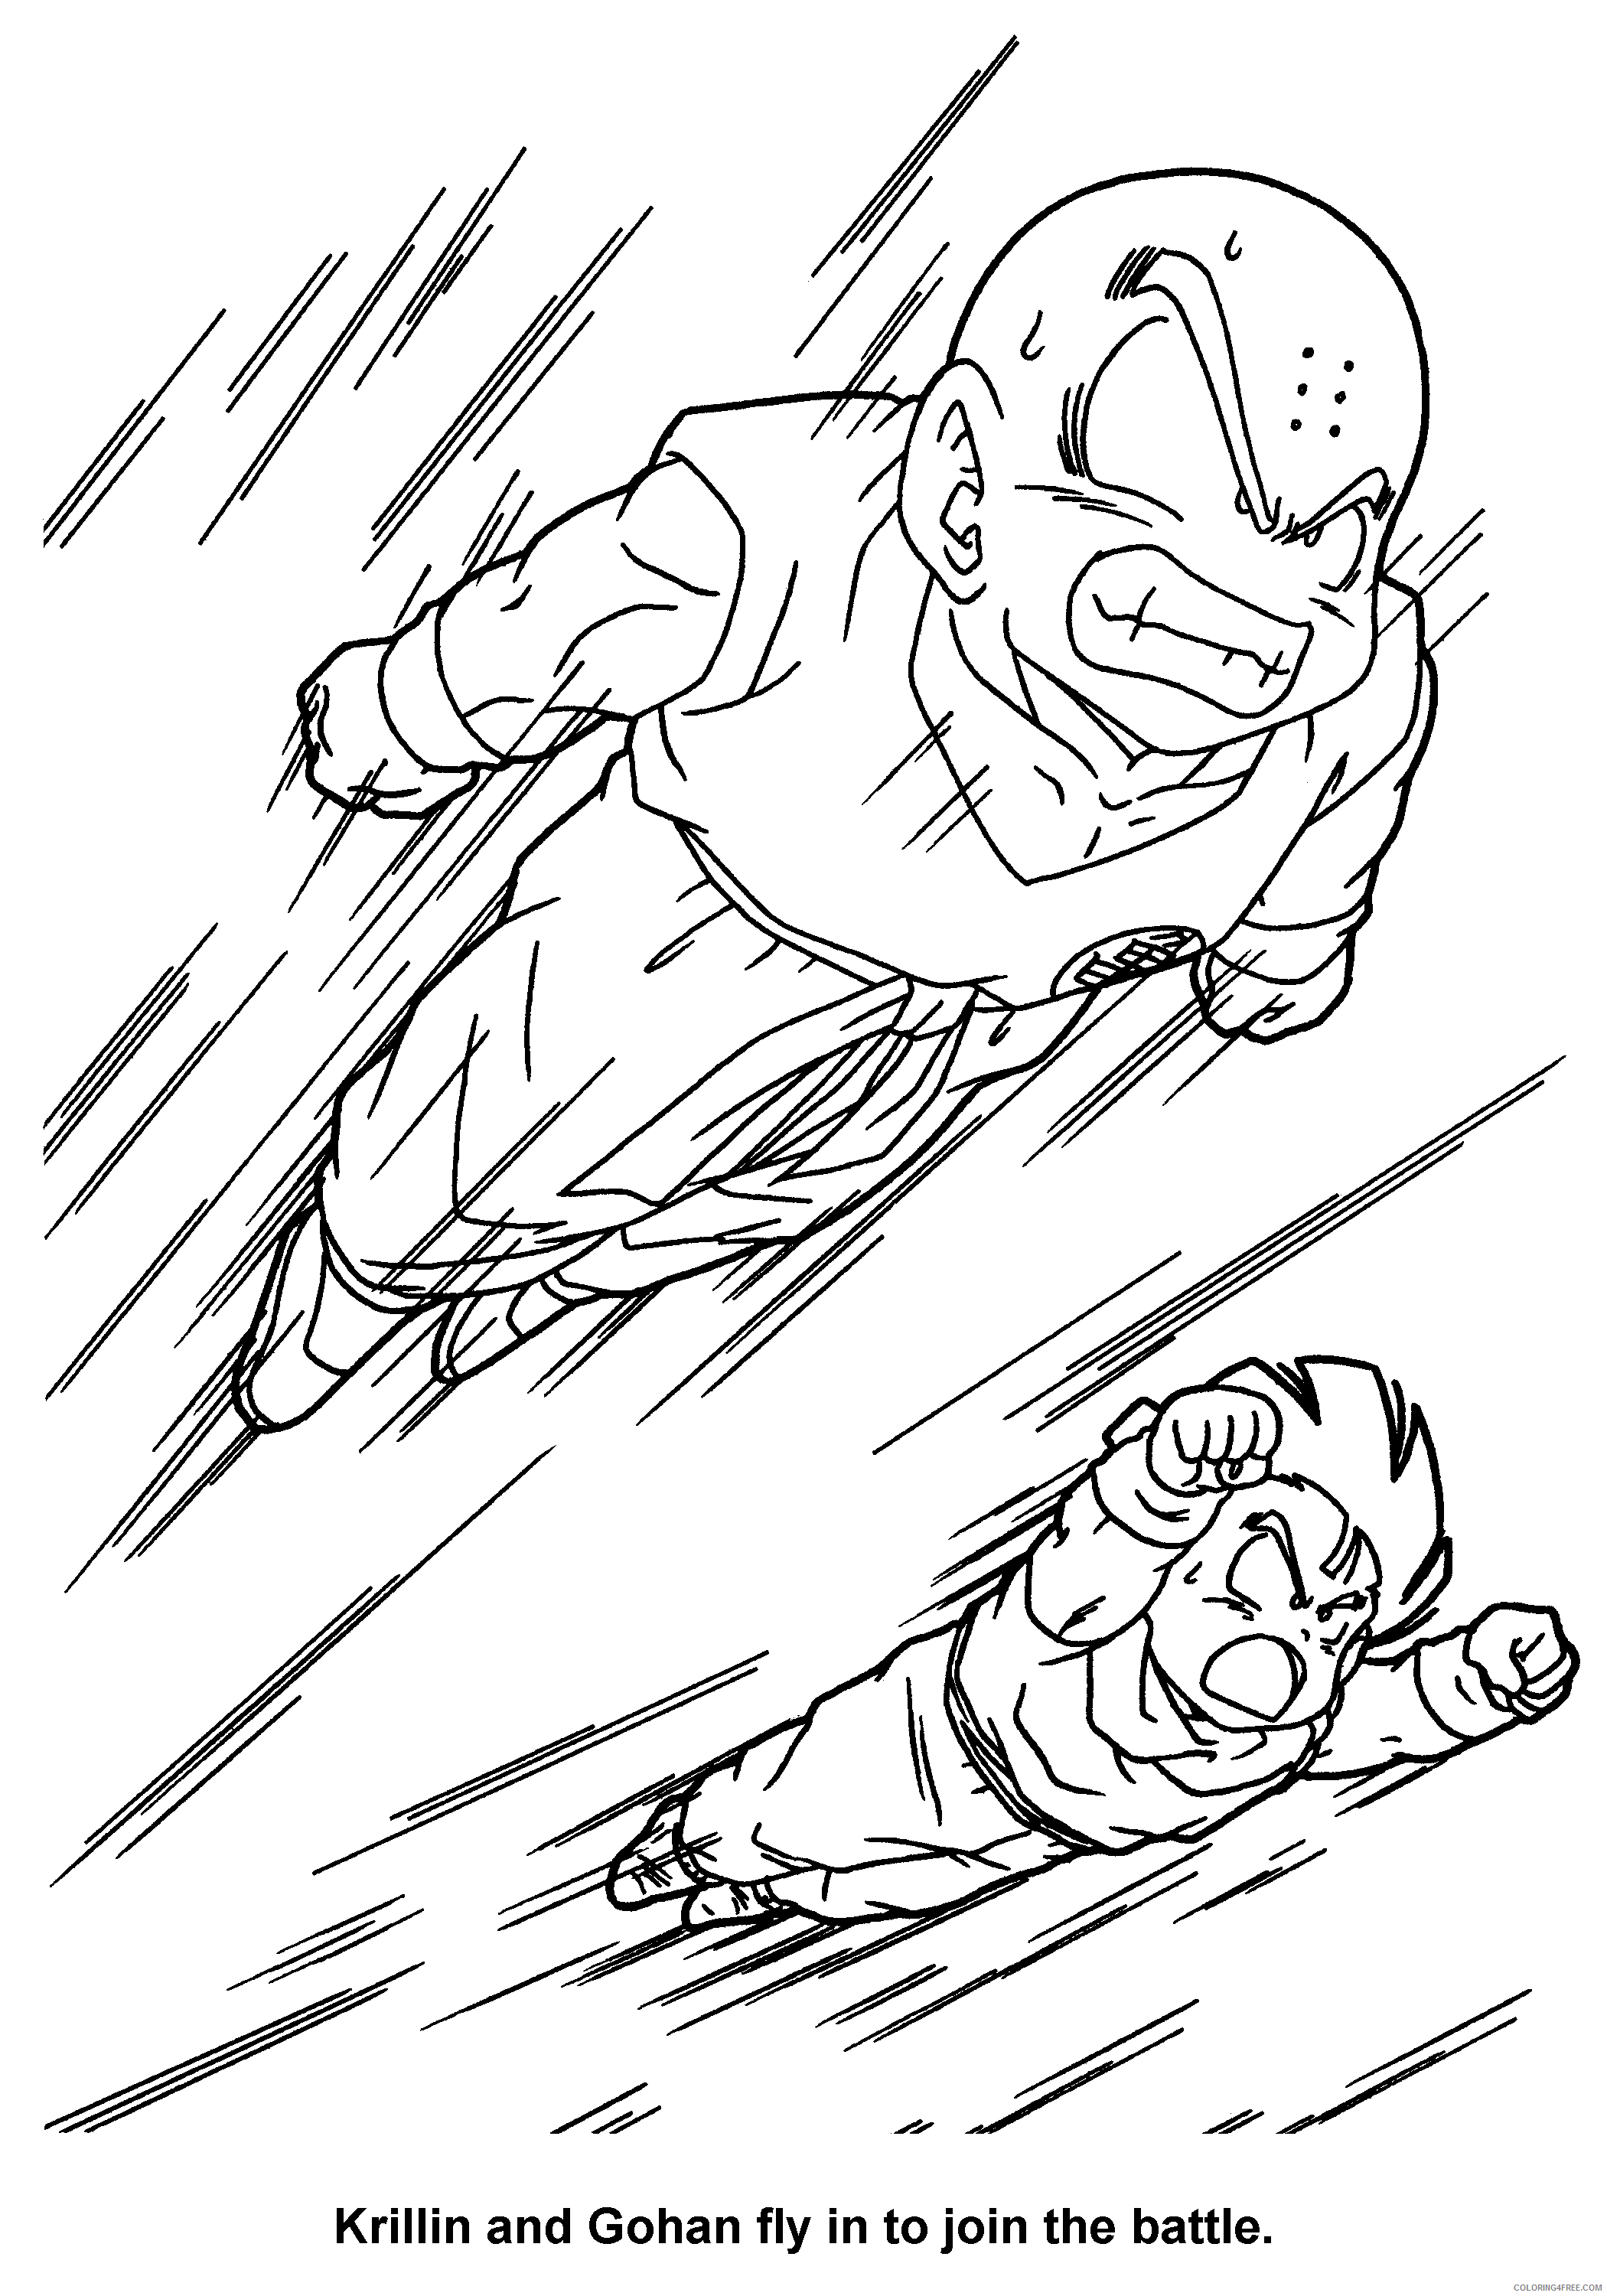 084 dragon ball z krillin and gohan fly to join the battle Printable Coloring4free